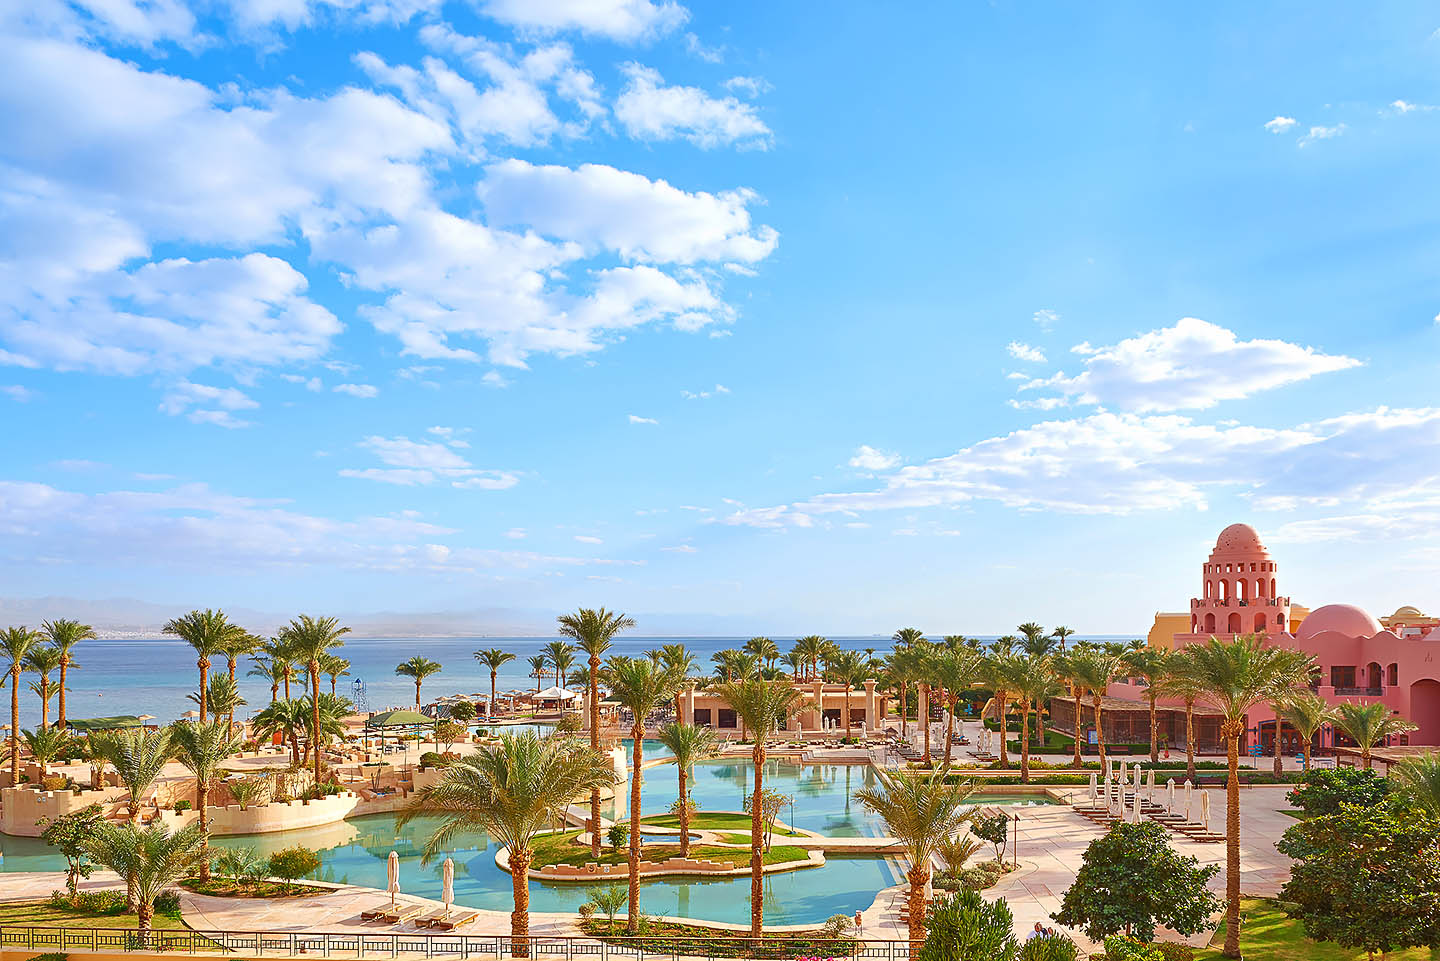 Sofitel Taba Beach resort Hotel Overview at noon